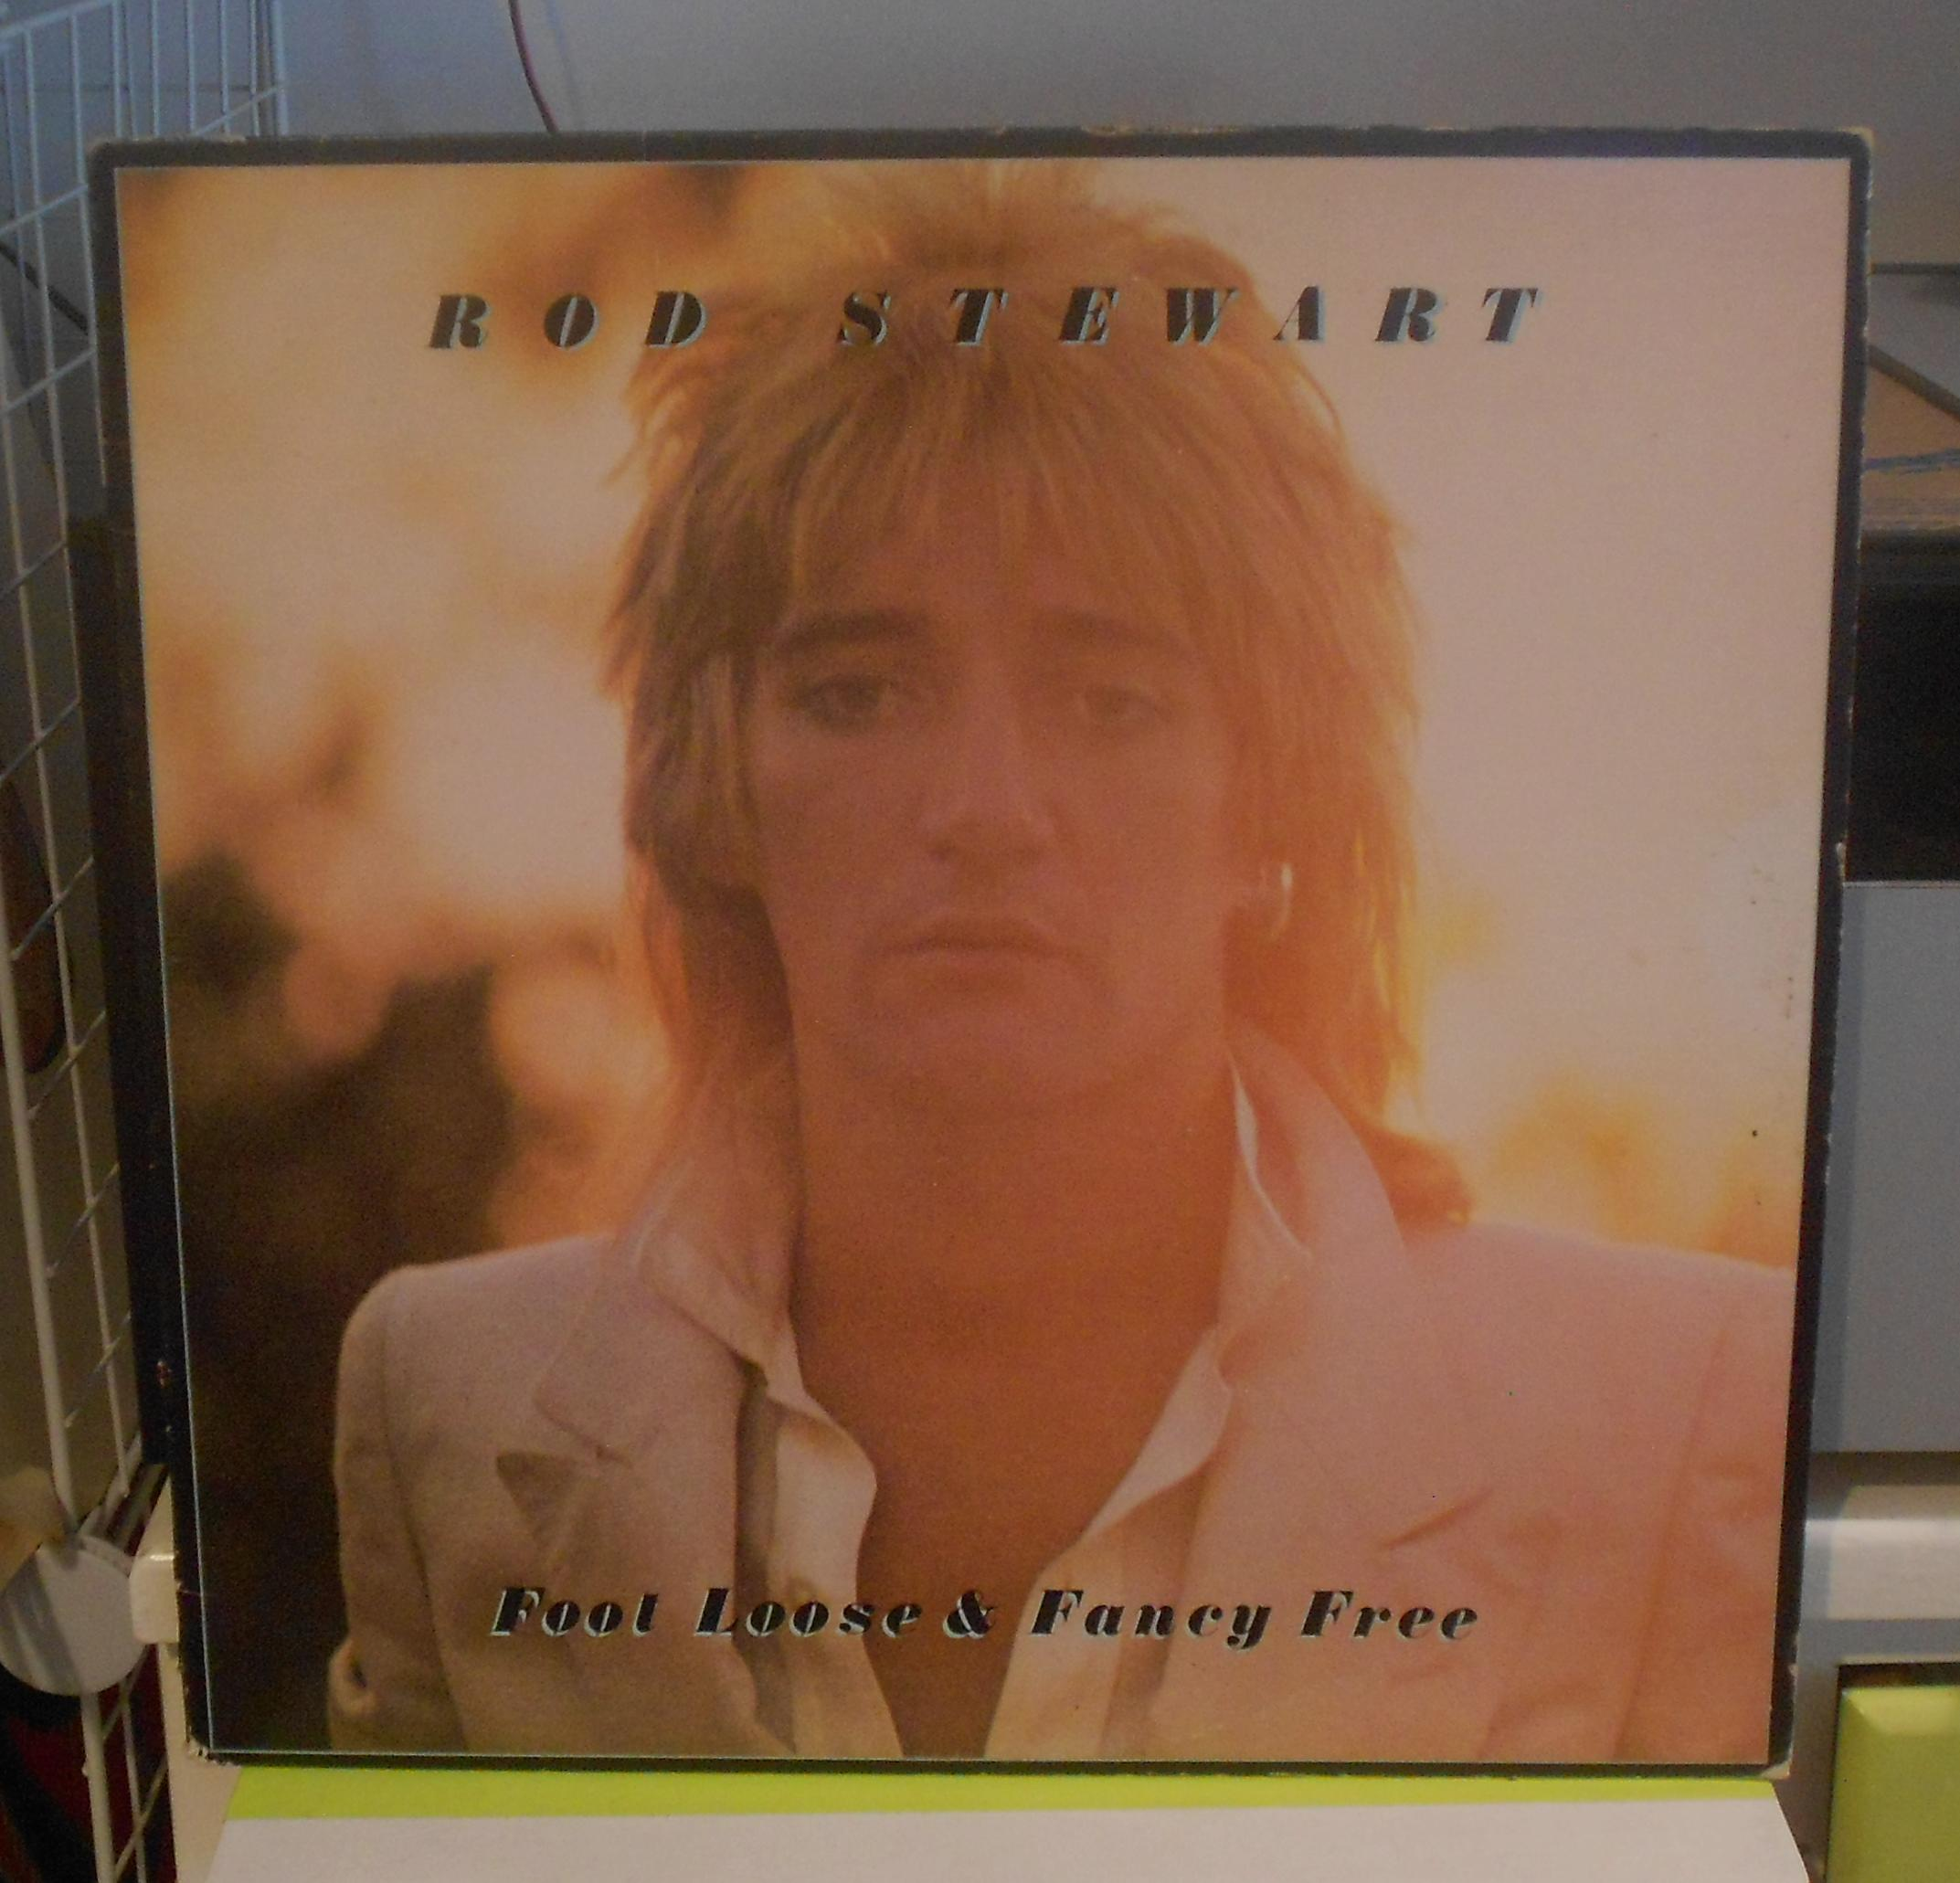 Rod Stewart - Foot Loose And Fancy Free Lp